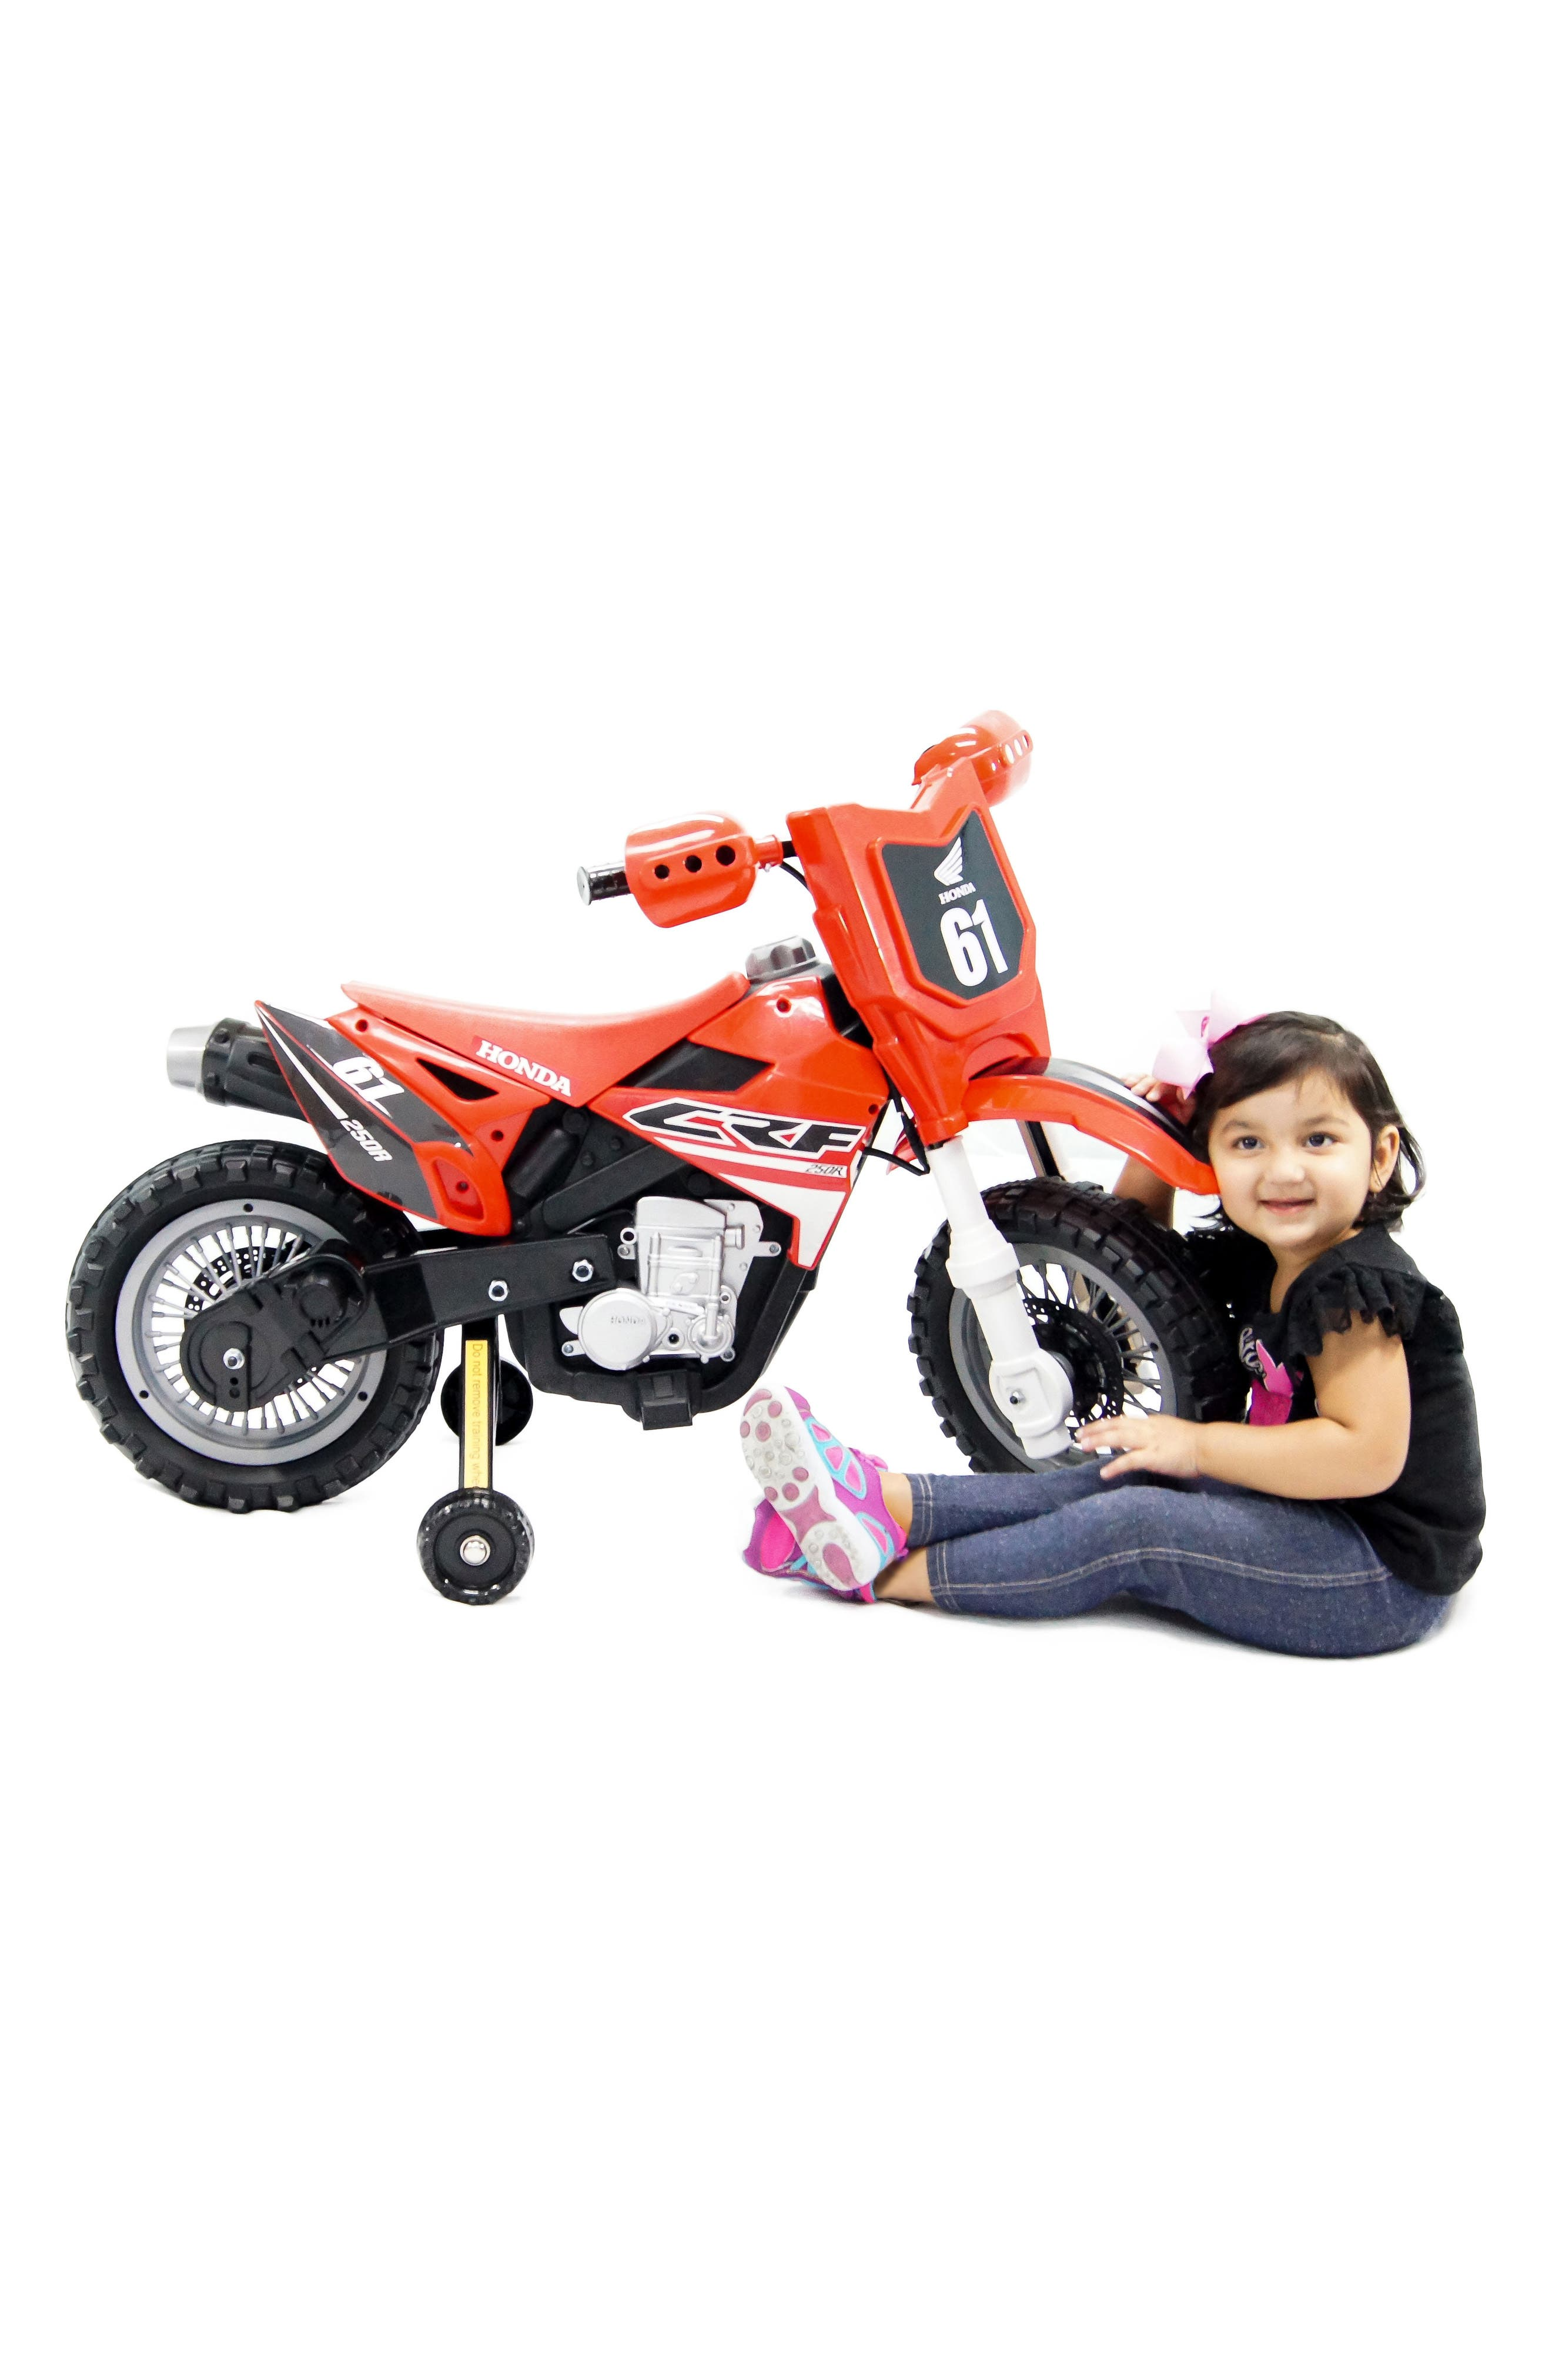 Honda Dirt Bike Ride-On Toy Motorcycle,                             Alternate thumbnail 7, color,                             RED